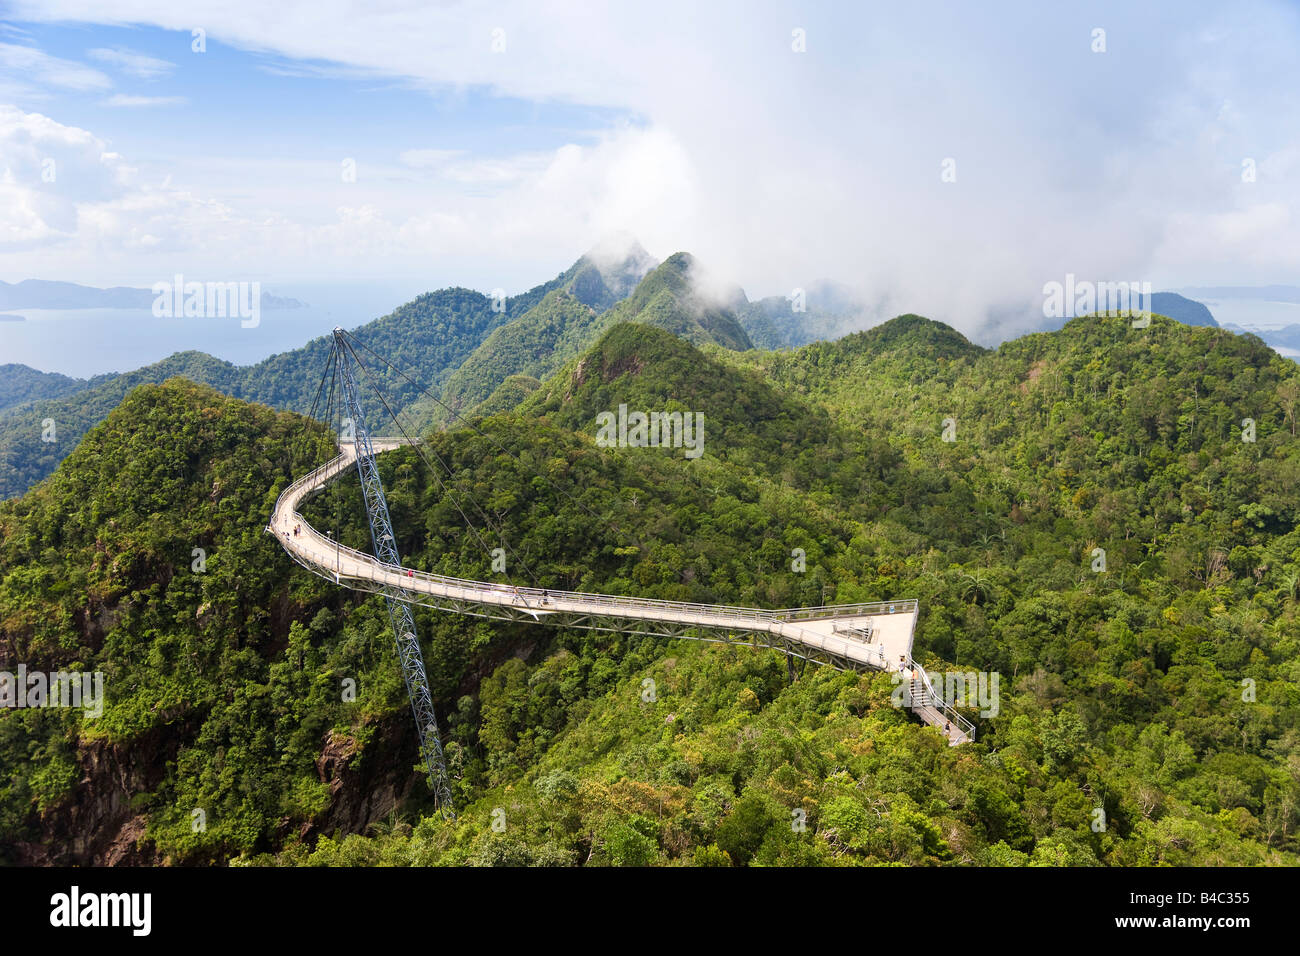 Asia, Malaysia, Langkawi Island, Pulau Langkawi, Hanging suspension walkway above the rainforest canopy - Stock Image